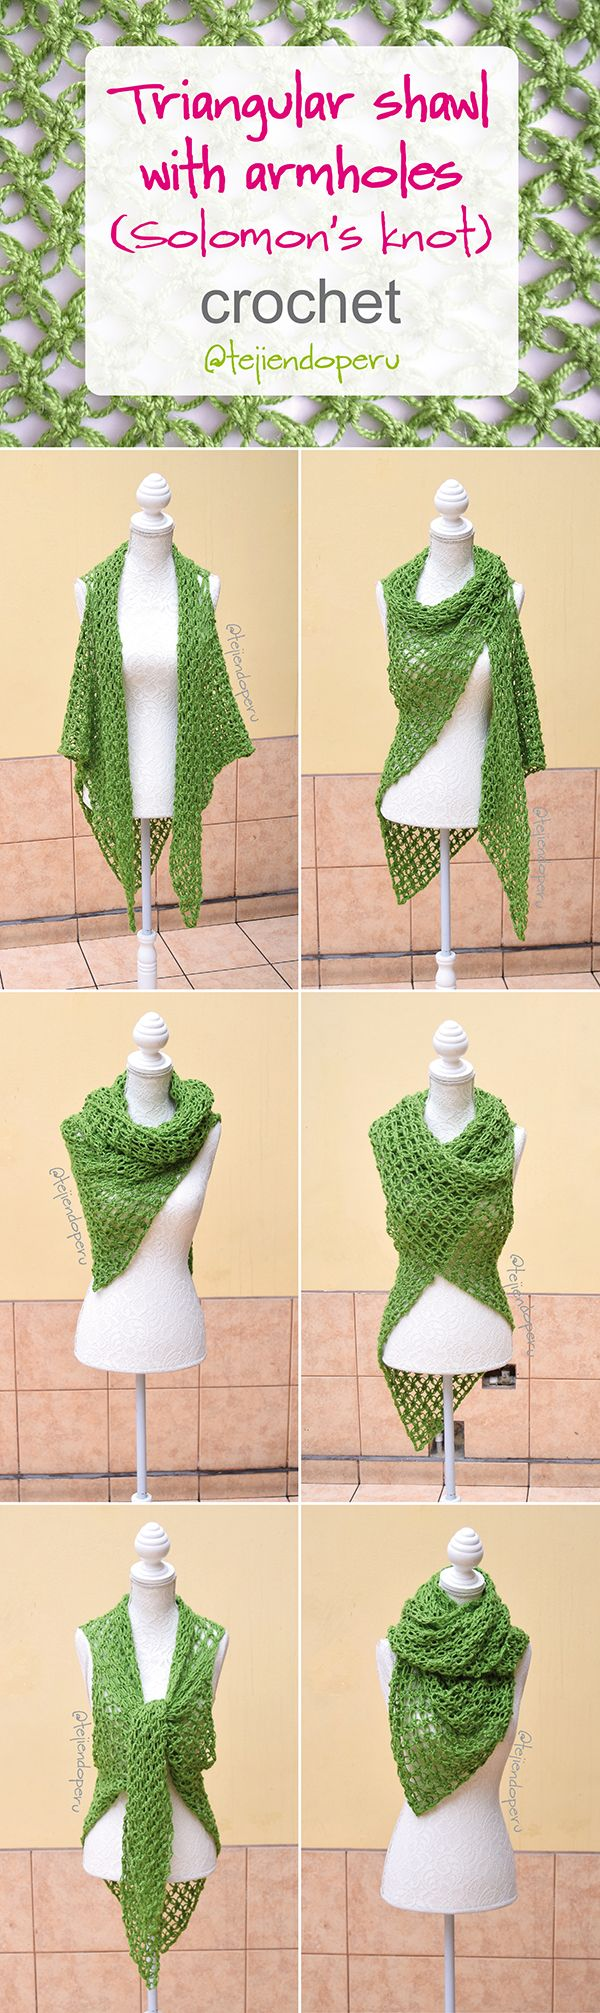 #Crochet: triangular shawl with armholes! Solomon's knot stitch :)  English subtitles video!